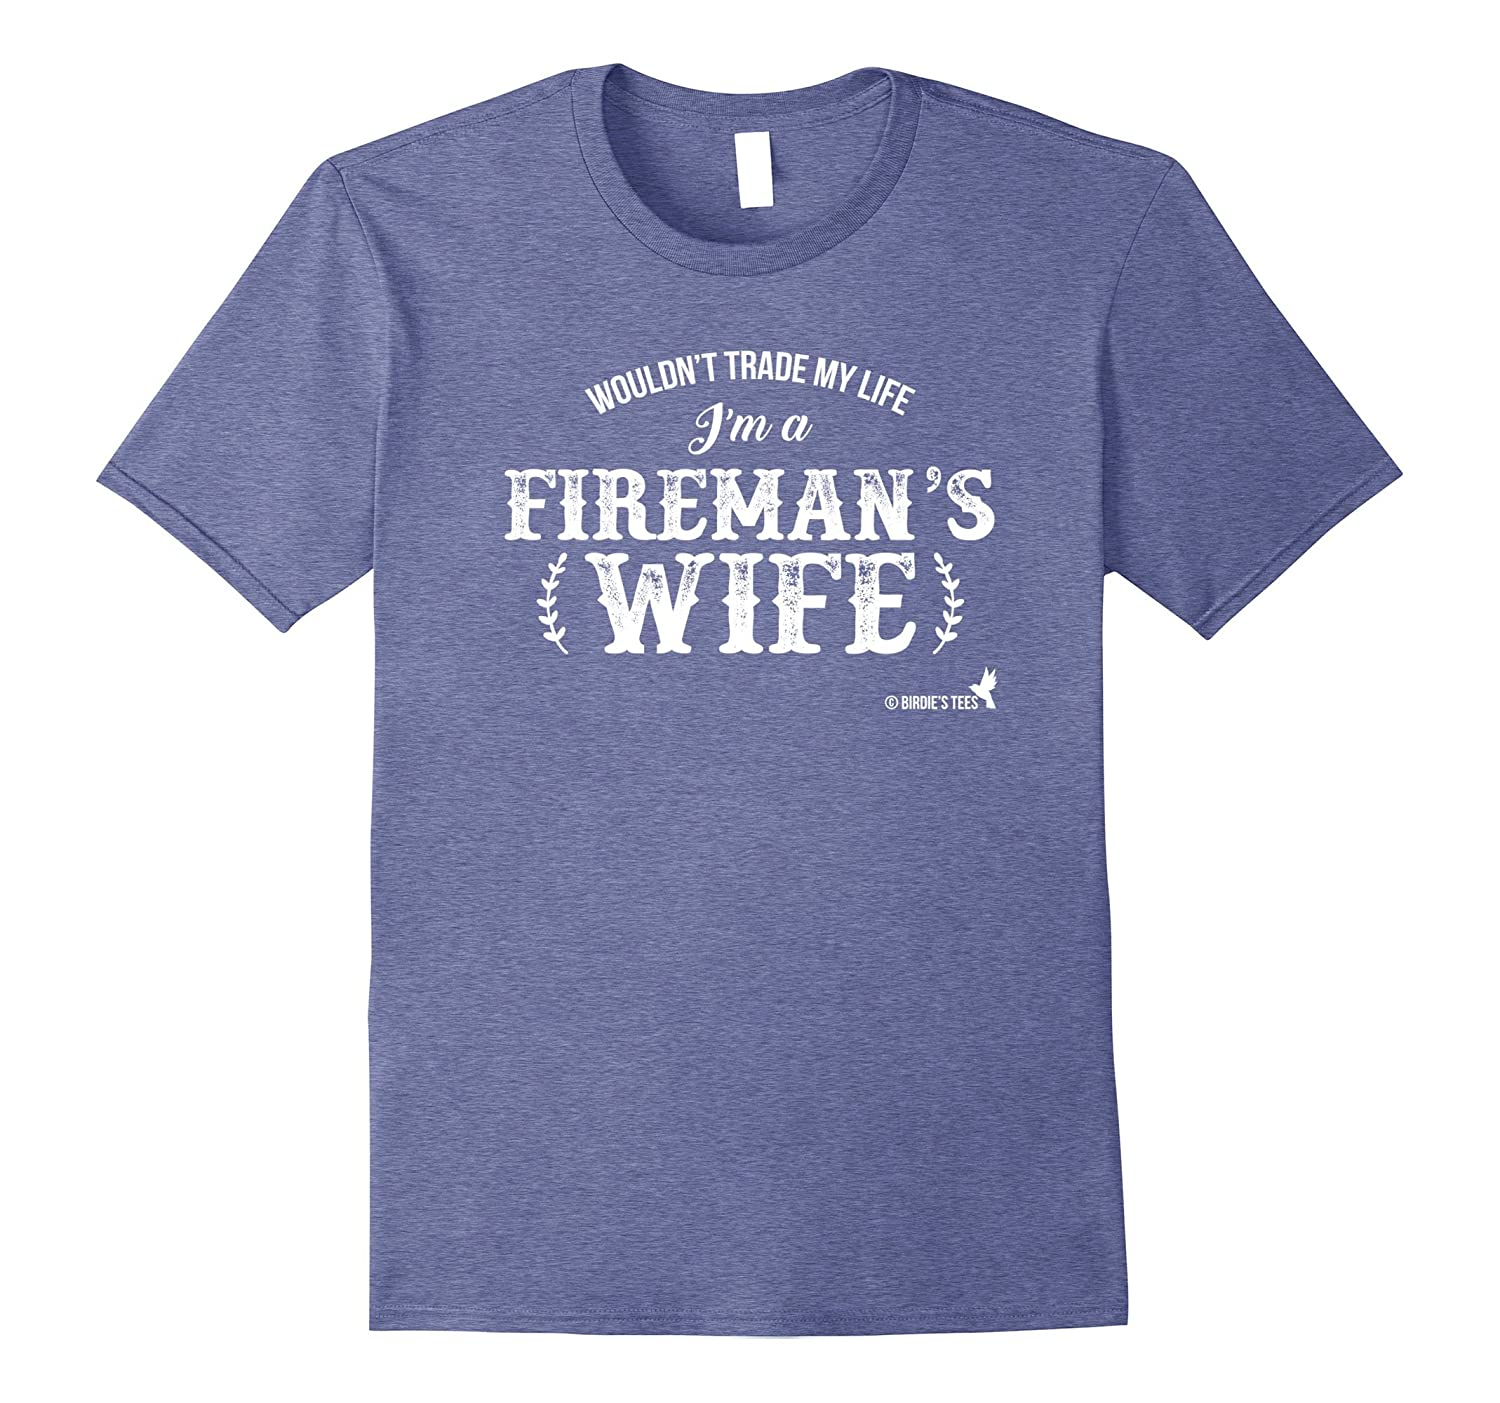 Firemans Wife T-Shirt for Firefighters-TD